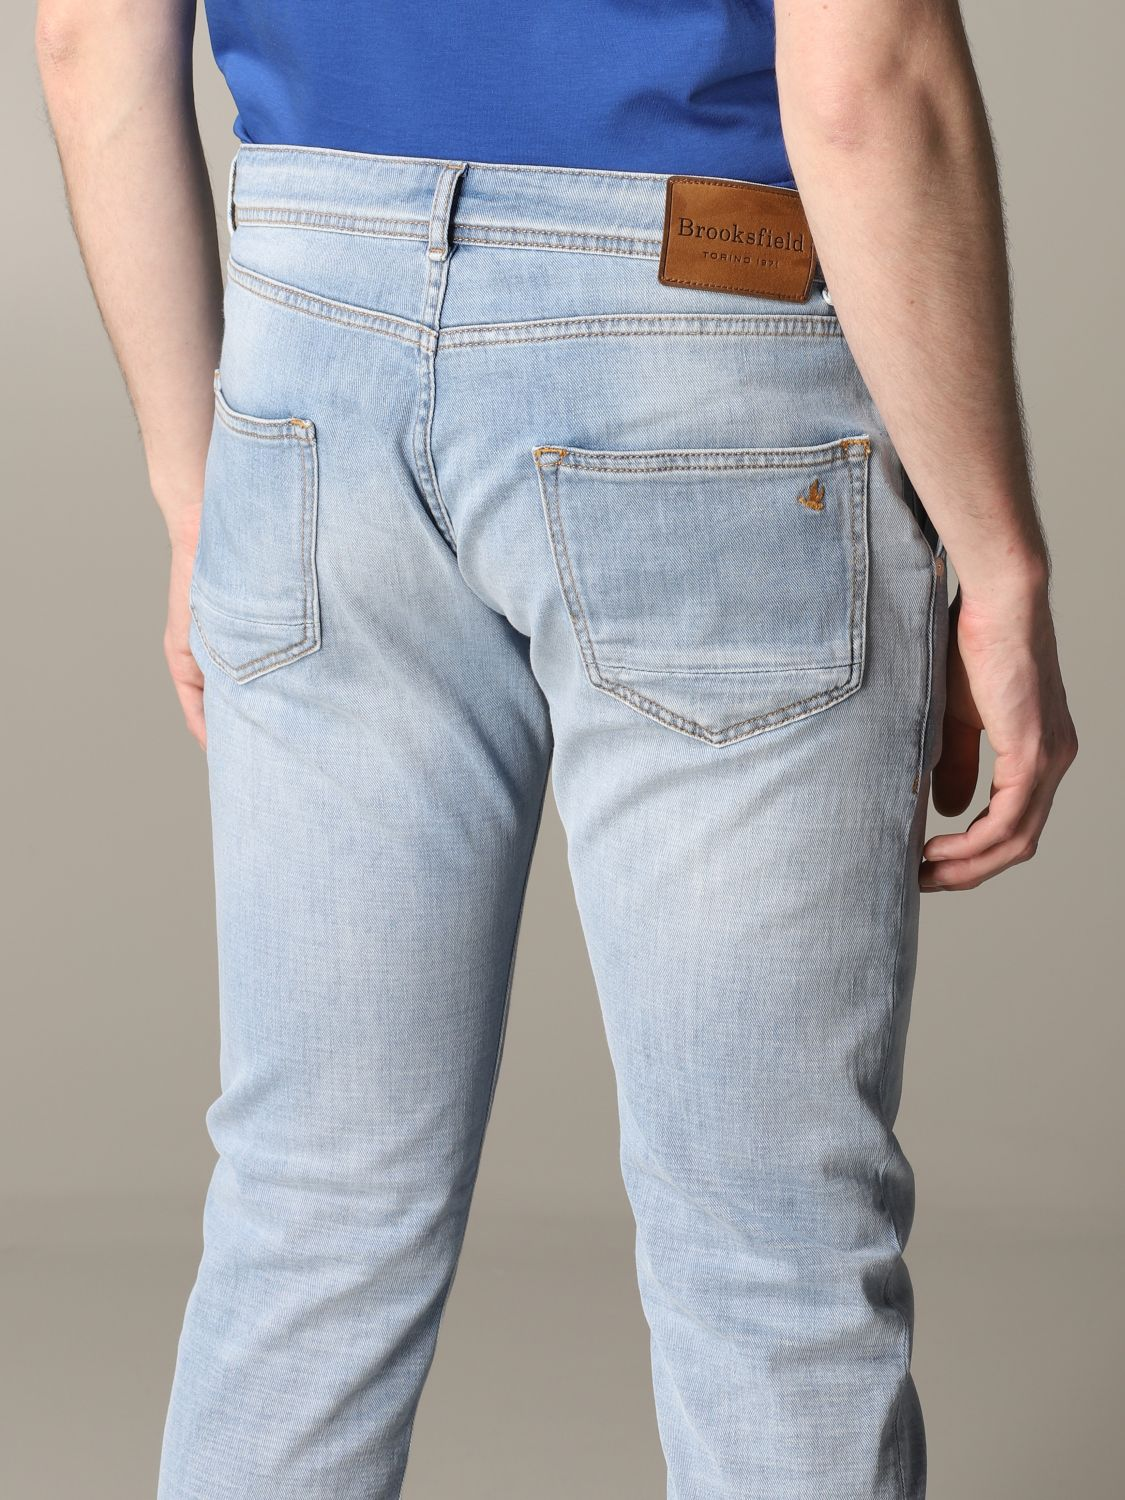 Jeans Brooksfield: Jeans herren Brooksfield stone washed 5